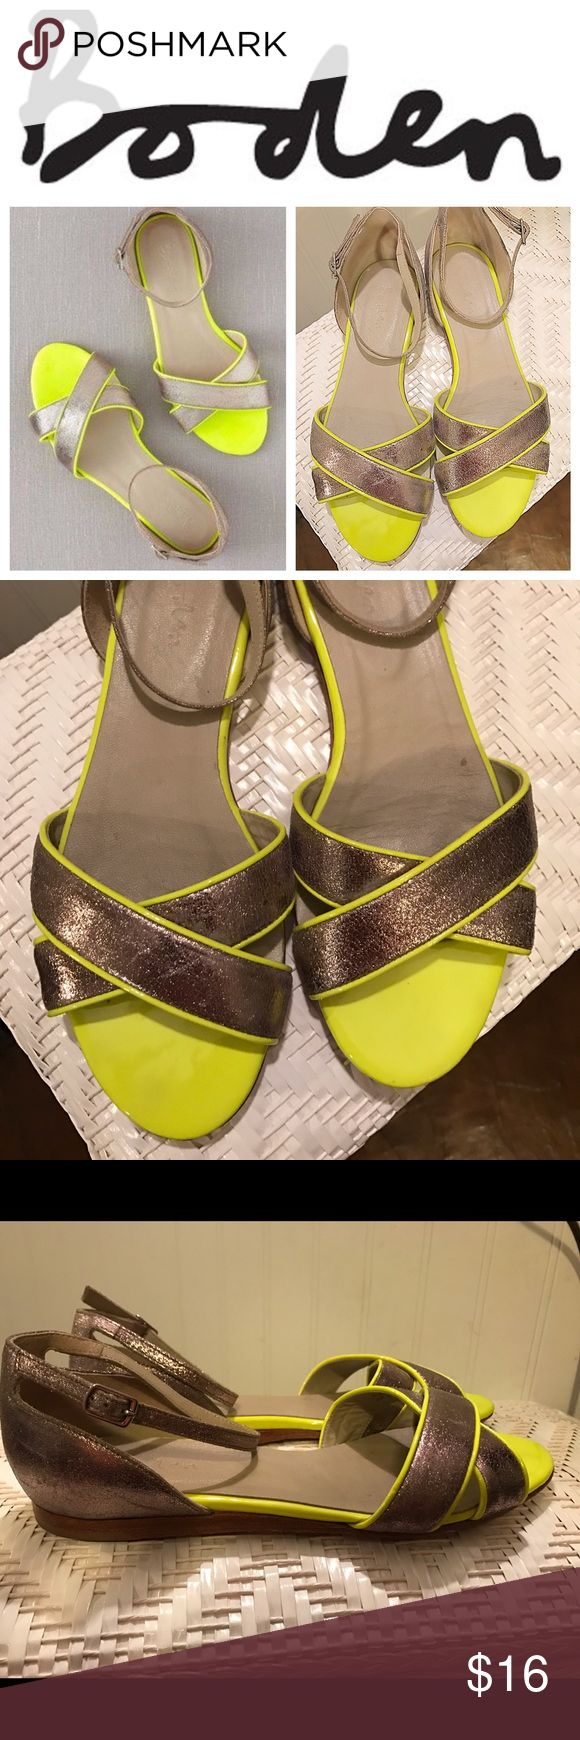 Boden Open-toed Flats with Ankle strap detail Boden open-toed flats, Sandals neon yellow and Pewter, worn a few times, only sign of wear is on bottom! No trades, Excellent used Condition EUC Boden Shoes Sandals